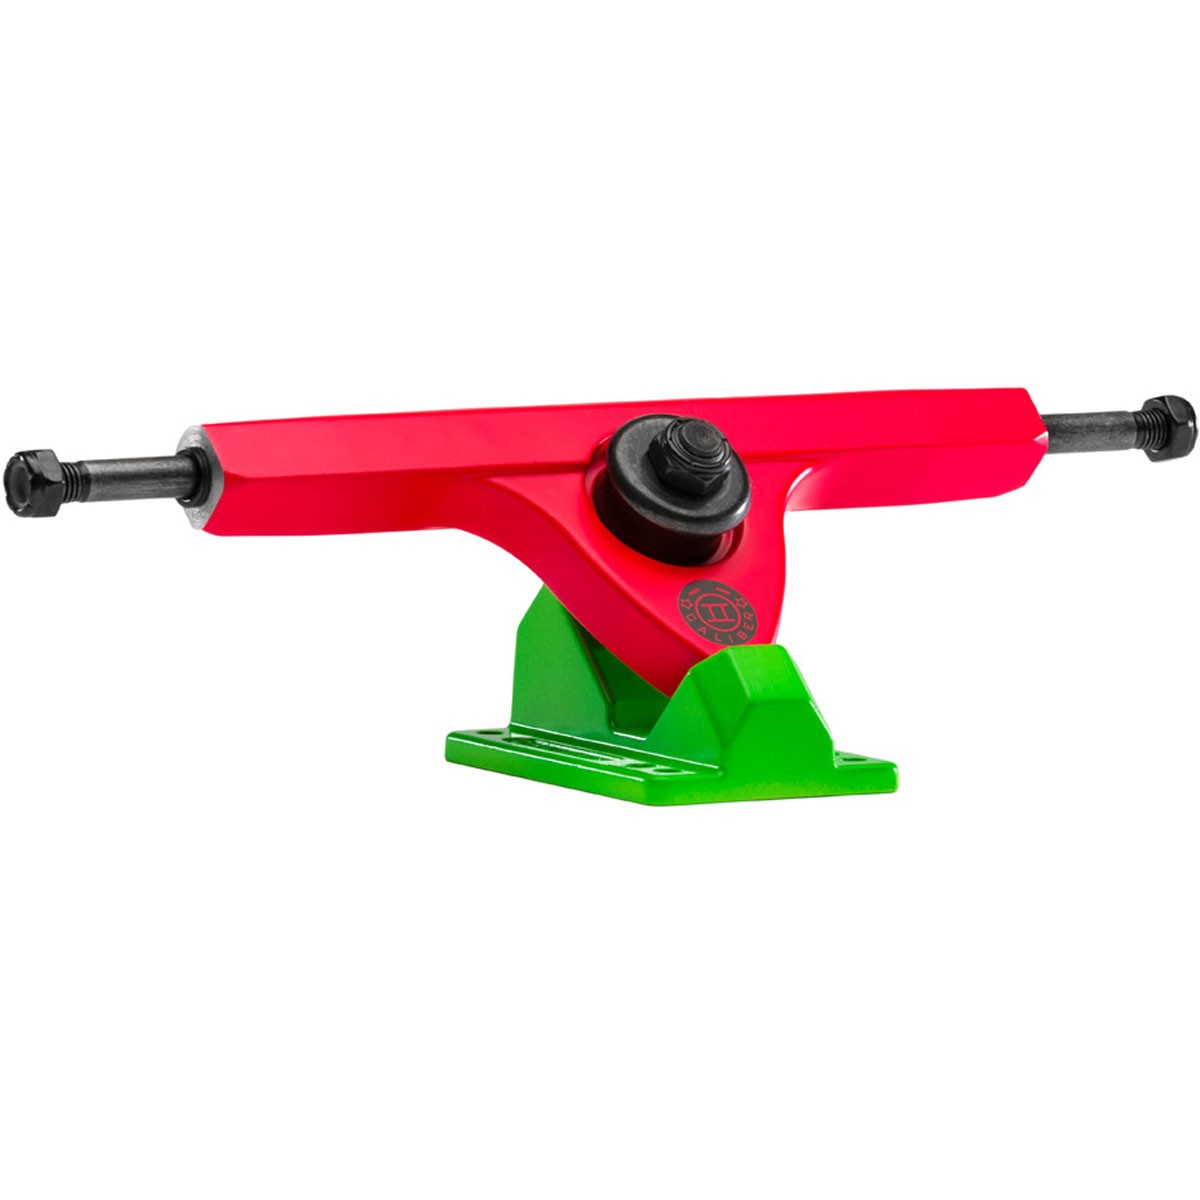 Caliber II Longboard Trucks - Acid Melon 44 Degree